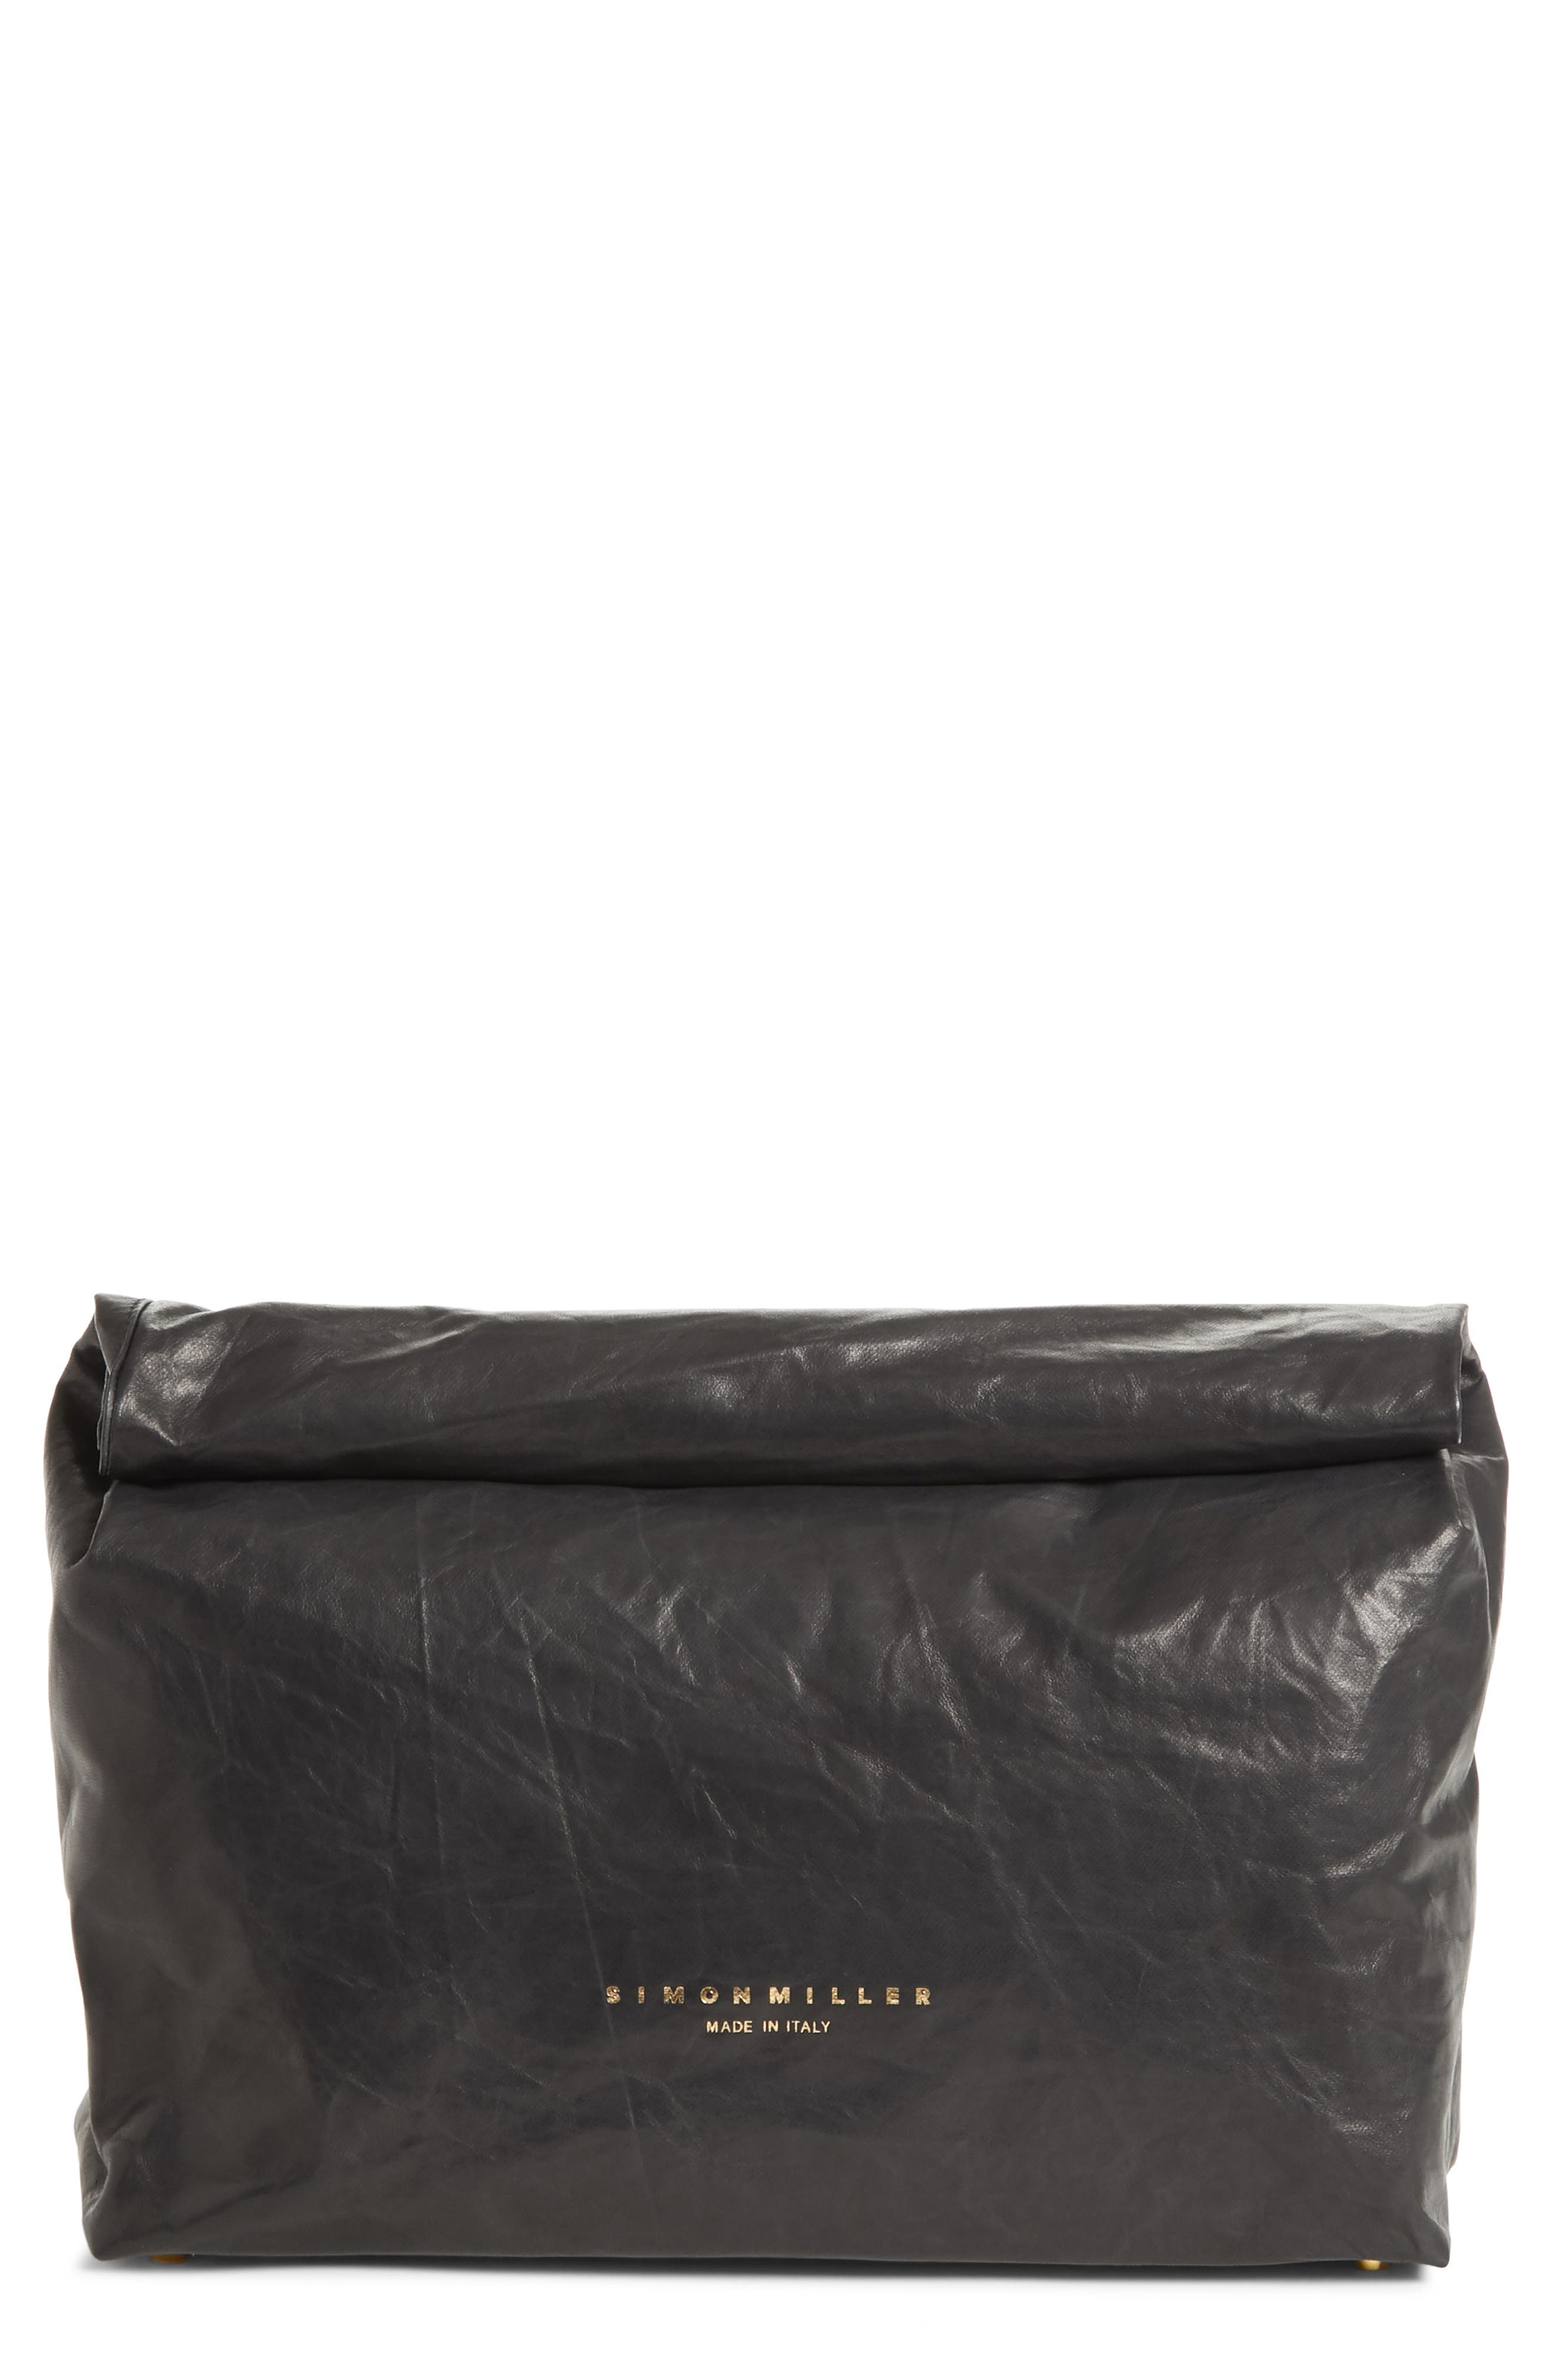 Lunchbag Leather Roll Top Clutch,                             Main thumbnail 1, color,                             BLACK